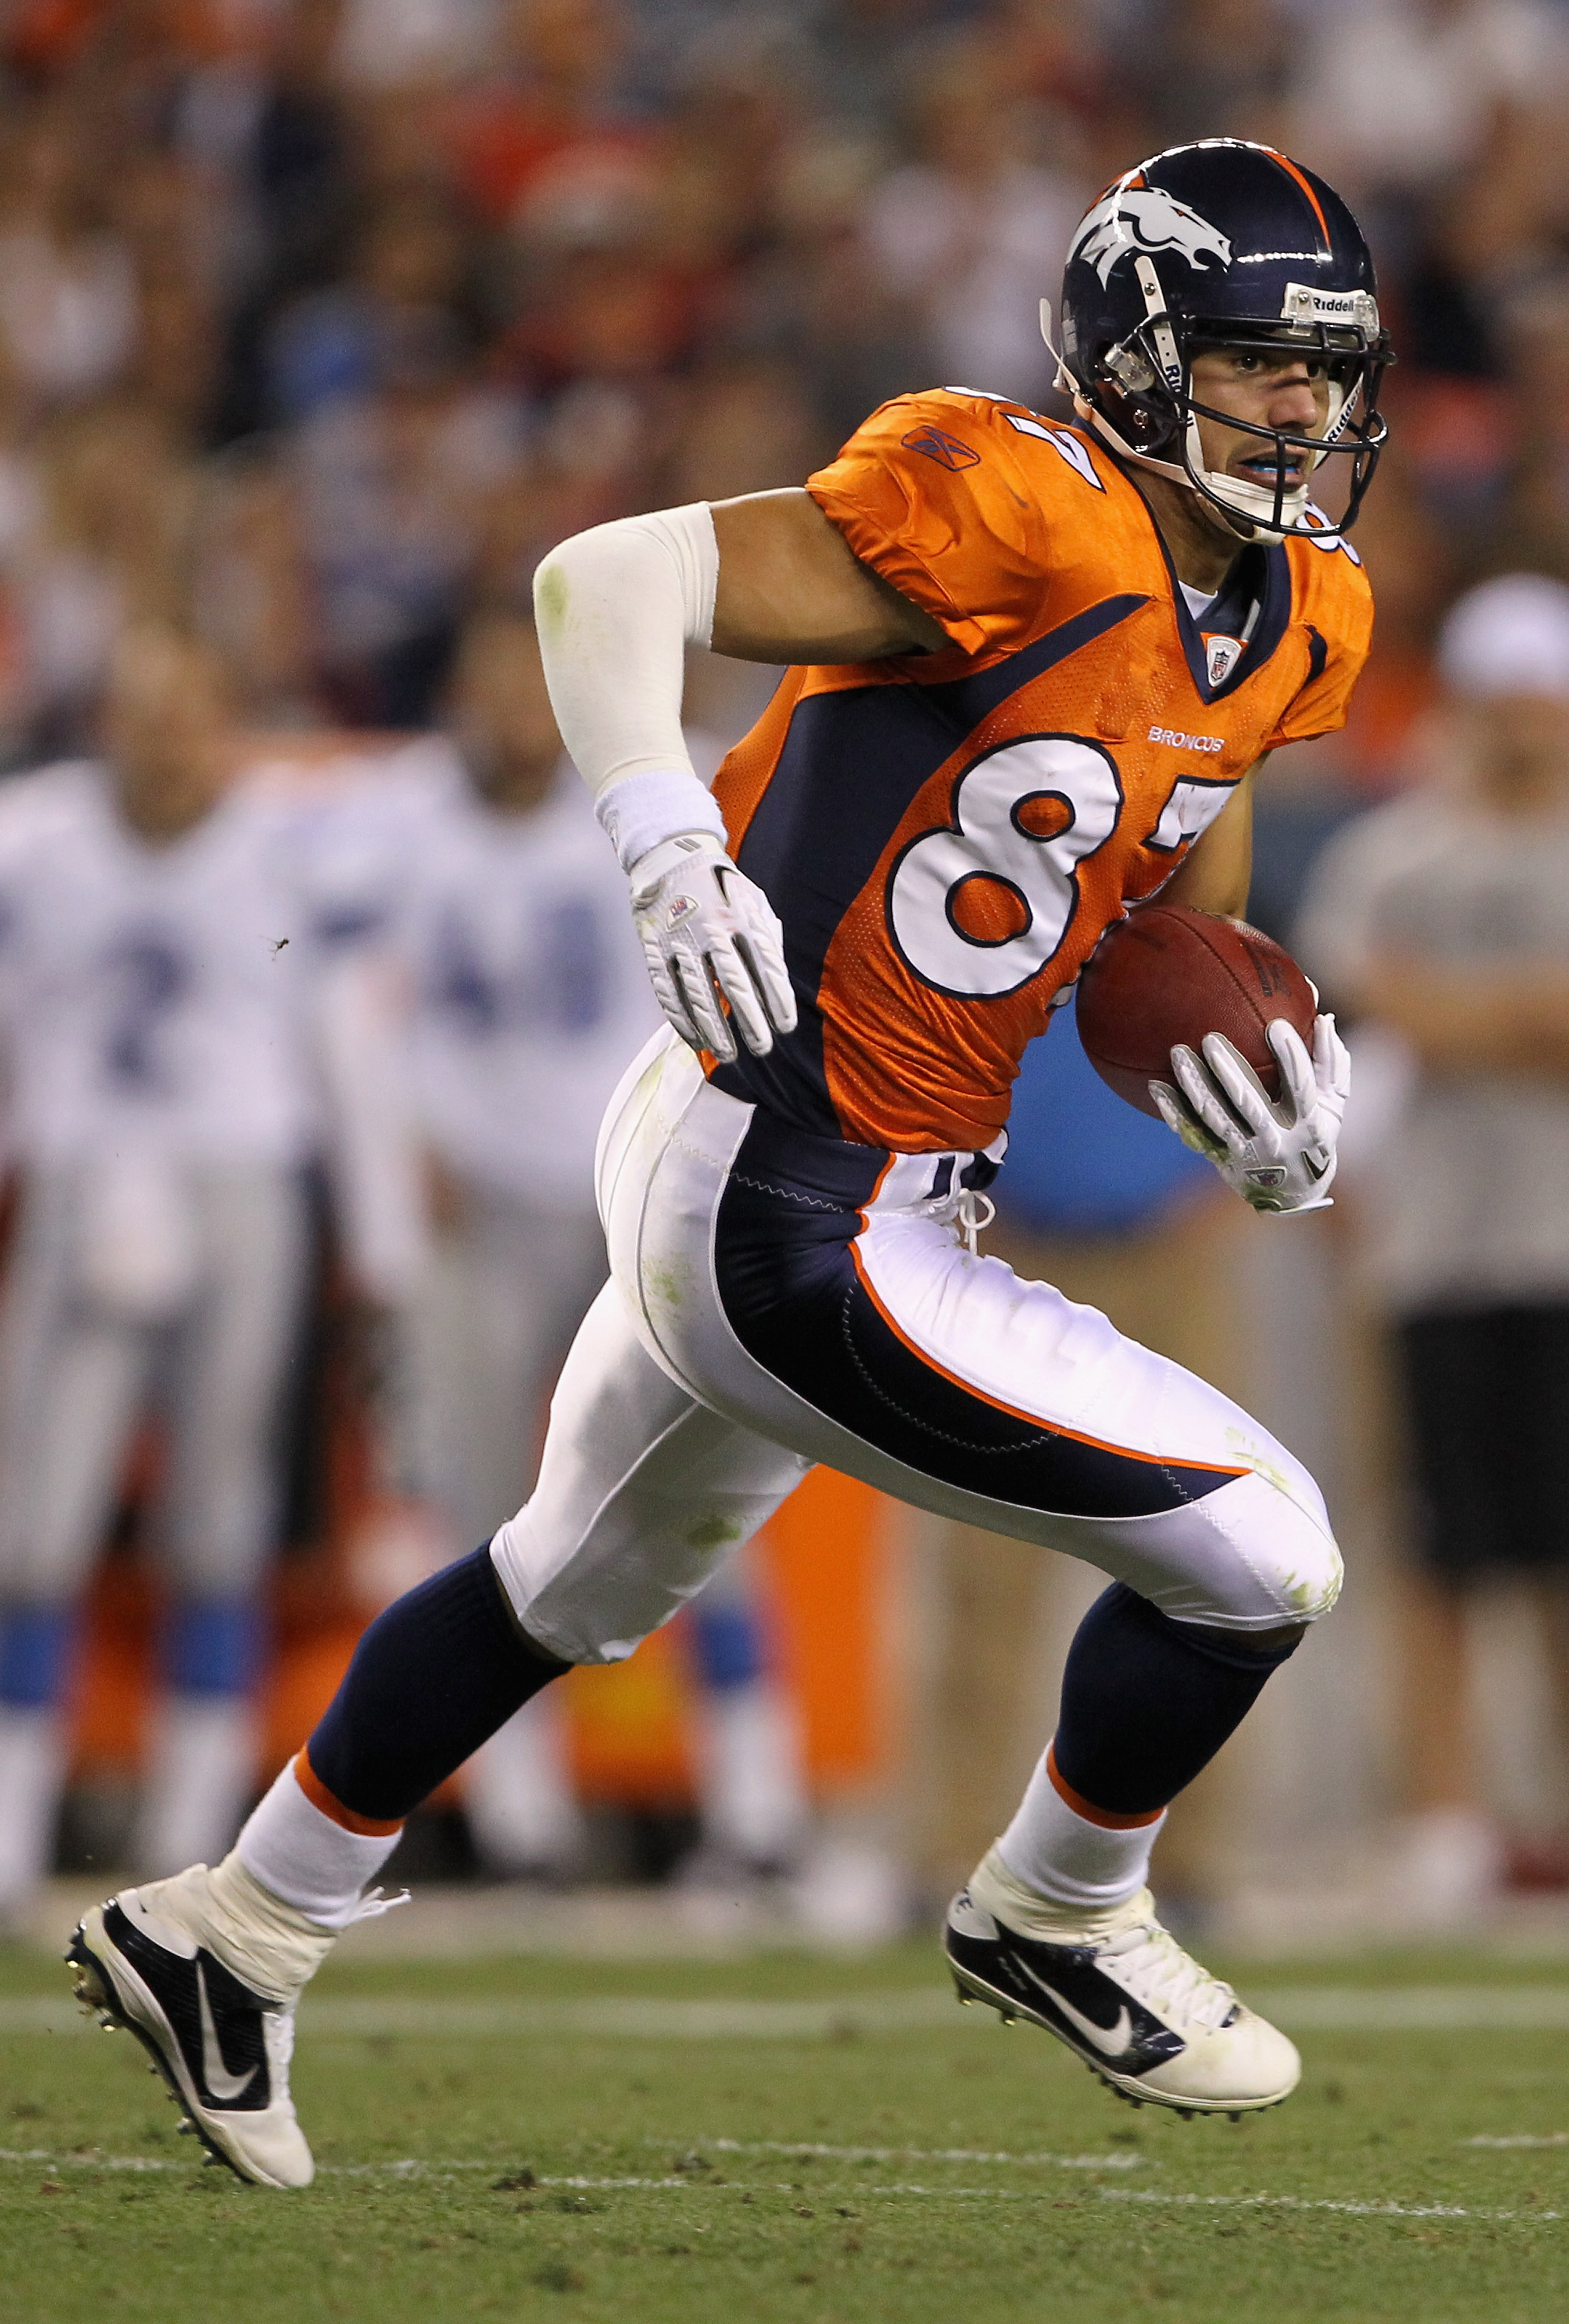 DENVER - AUGUST 21:  Wide receiver Eric Decker #87 of the Denver Broncos makes a reception against the Detroit Lions during preseason NFL action at INVESCO Field at Mile High on August 21, 2010 in Denver, Colorado. The Lions defeated the Broncos 25-20.  (